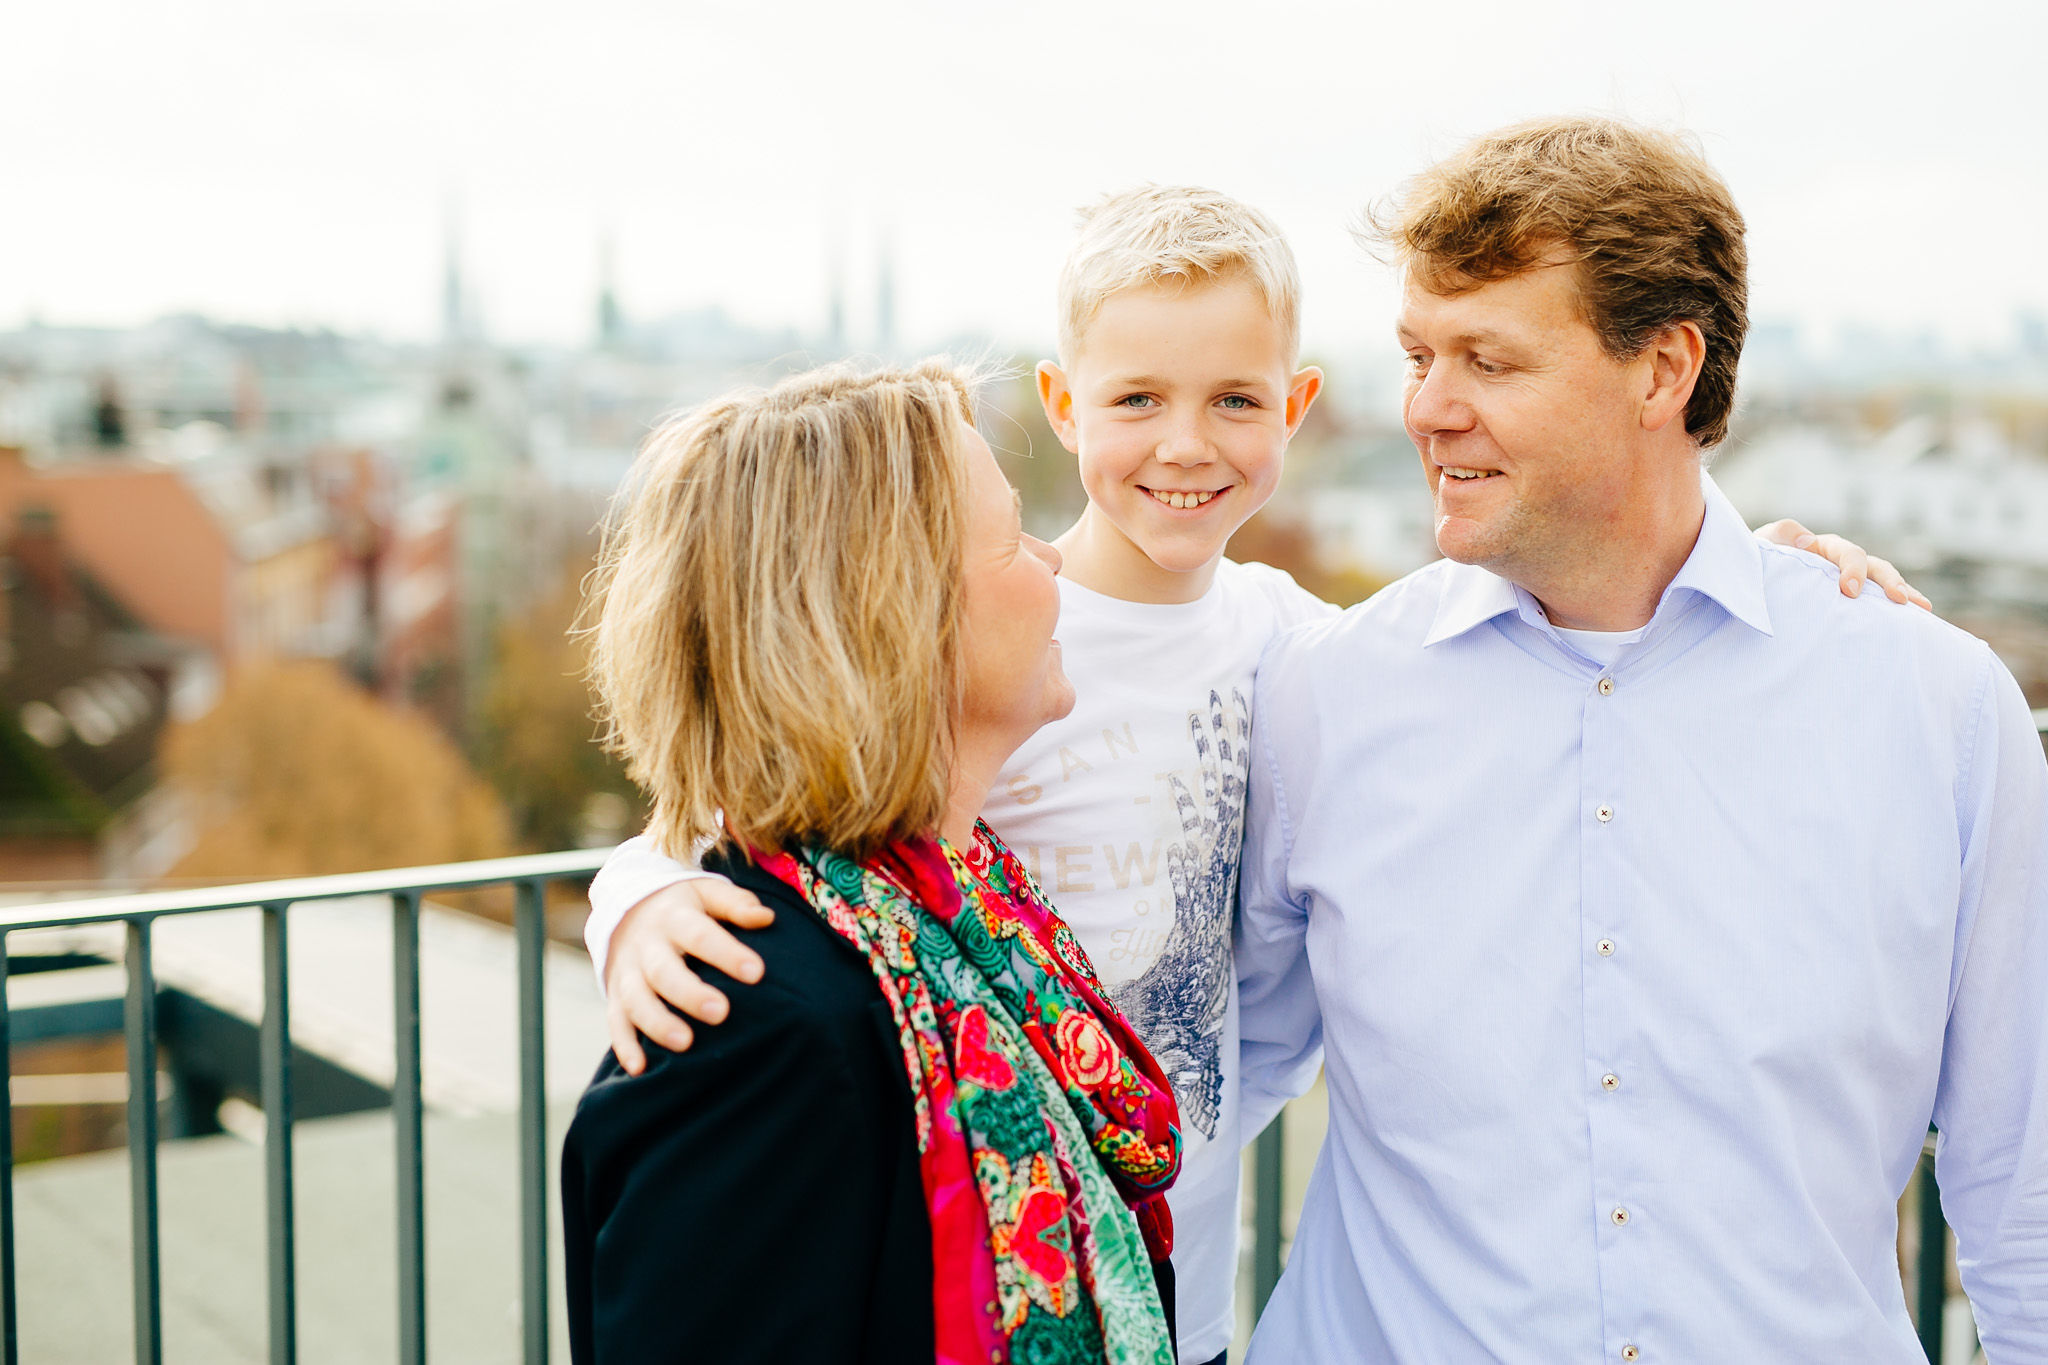 familienfotoshooting-GB-1